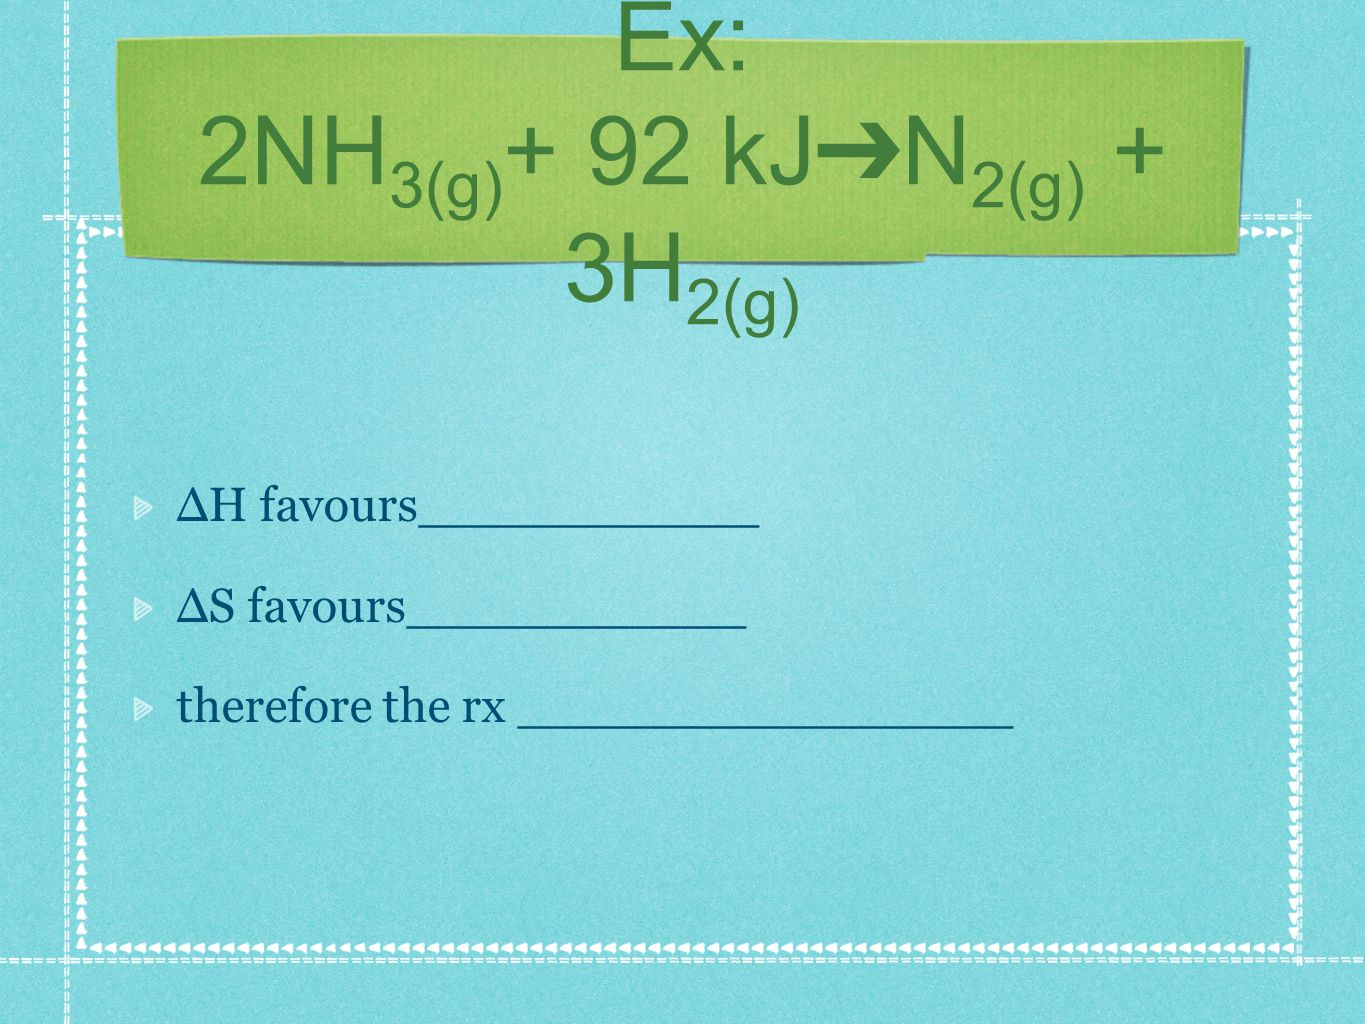 Ex: 2NH 3(g) + 92 kJ N 2(g) + 3H 2(g) H favours___________ S favours___________ therefore the rx ________________